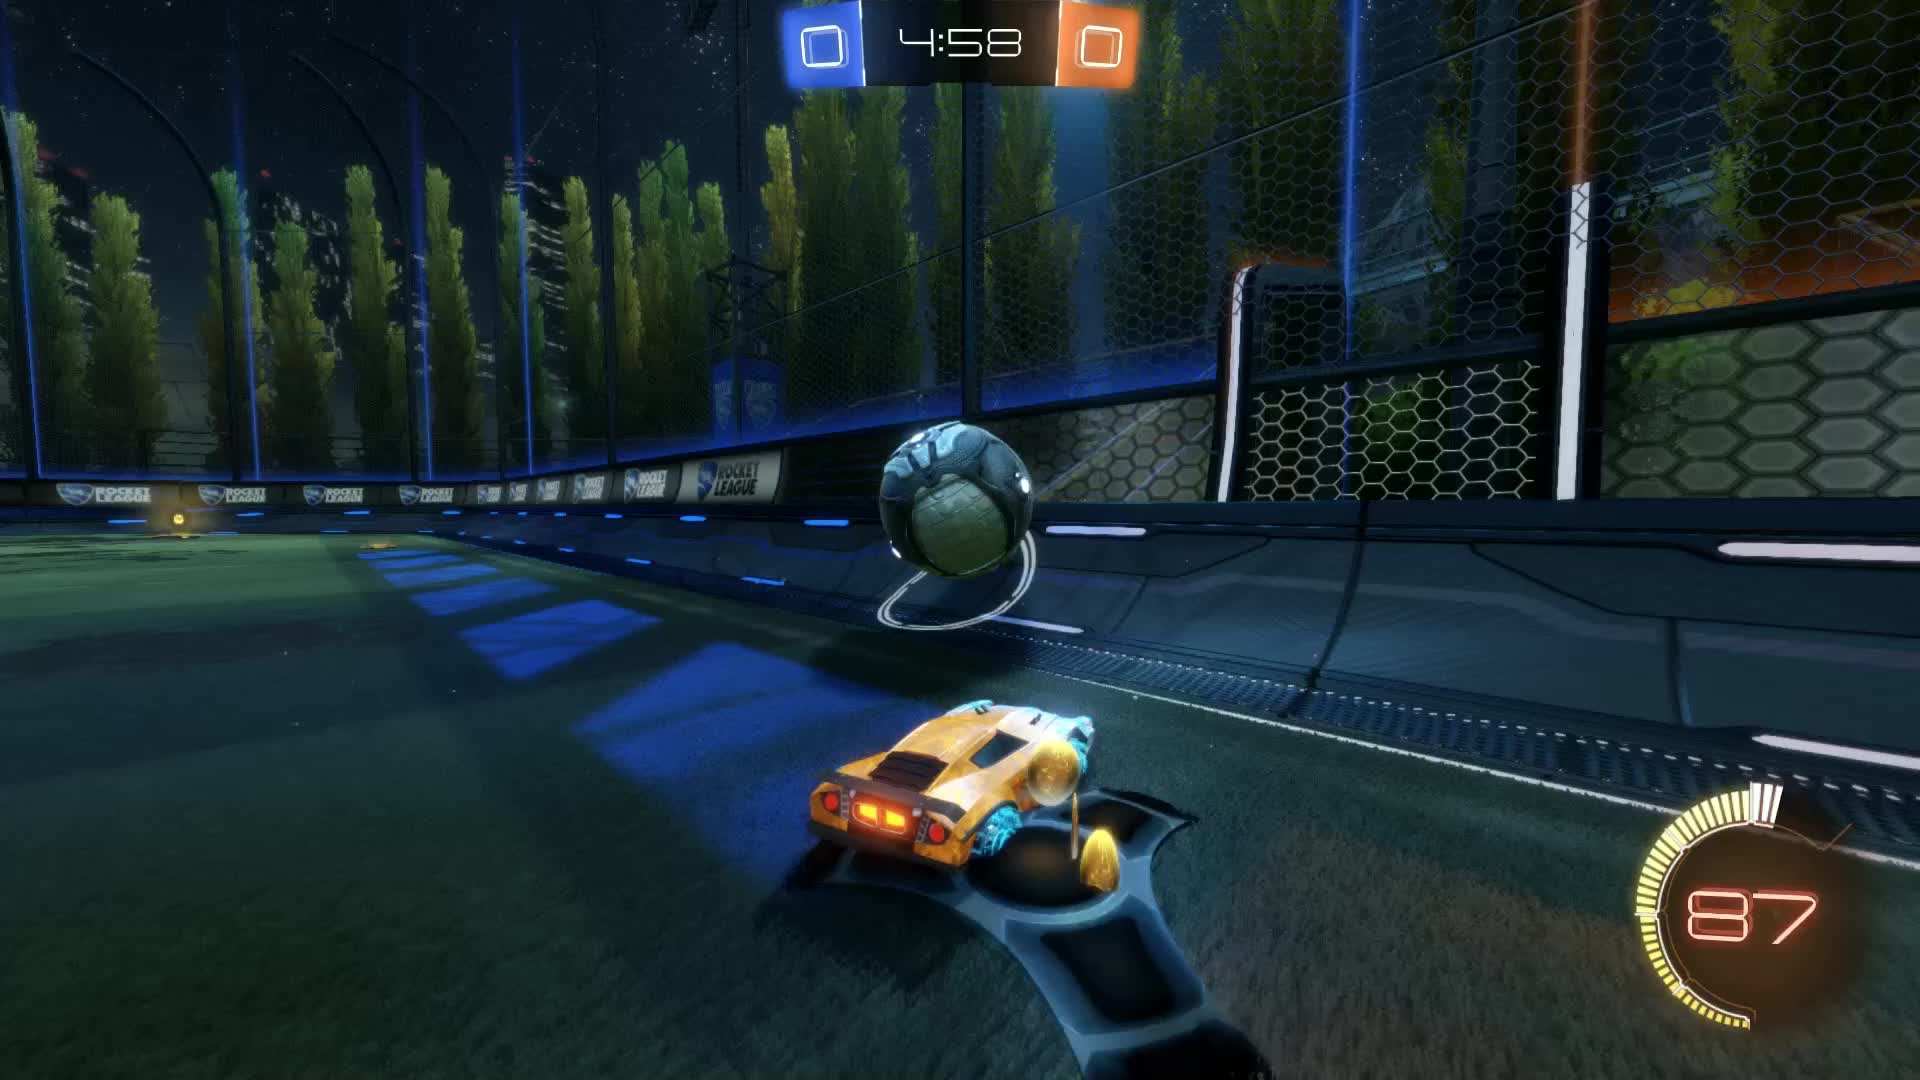 Gif Your Game, GifYourGame, Goal, Rocket League, RocketLeague, Traceur YT, Goal 1: Traceur YT GIFs